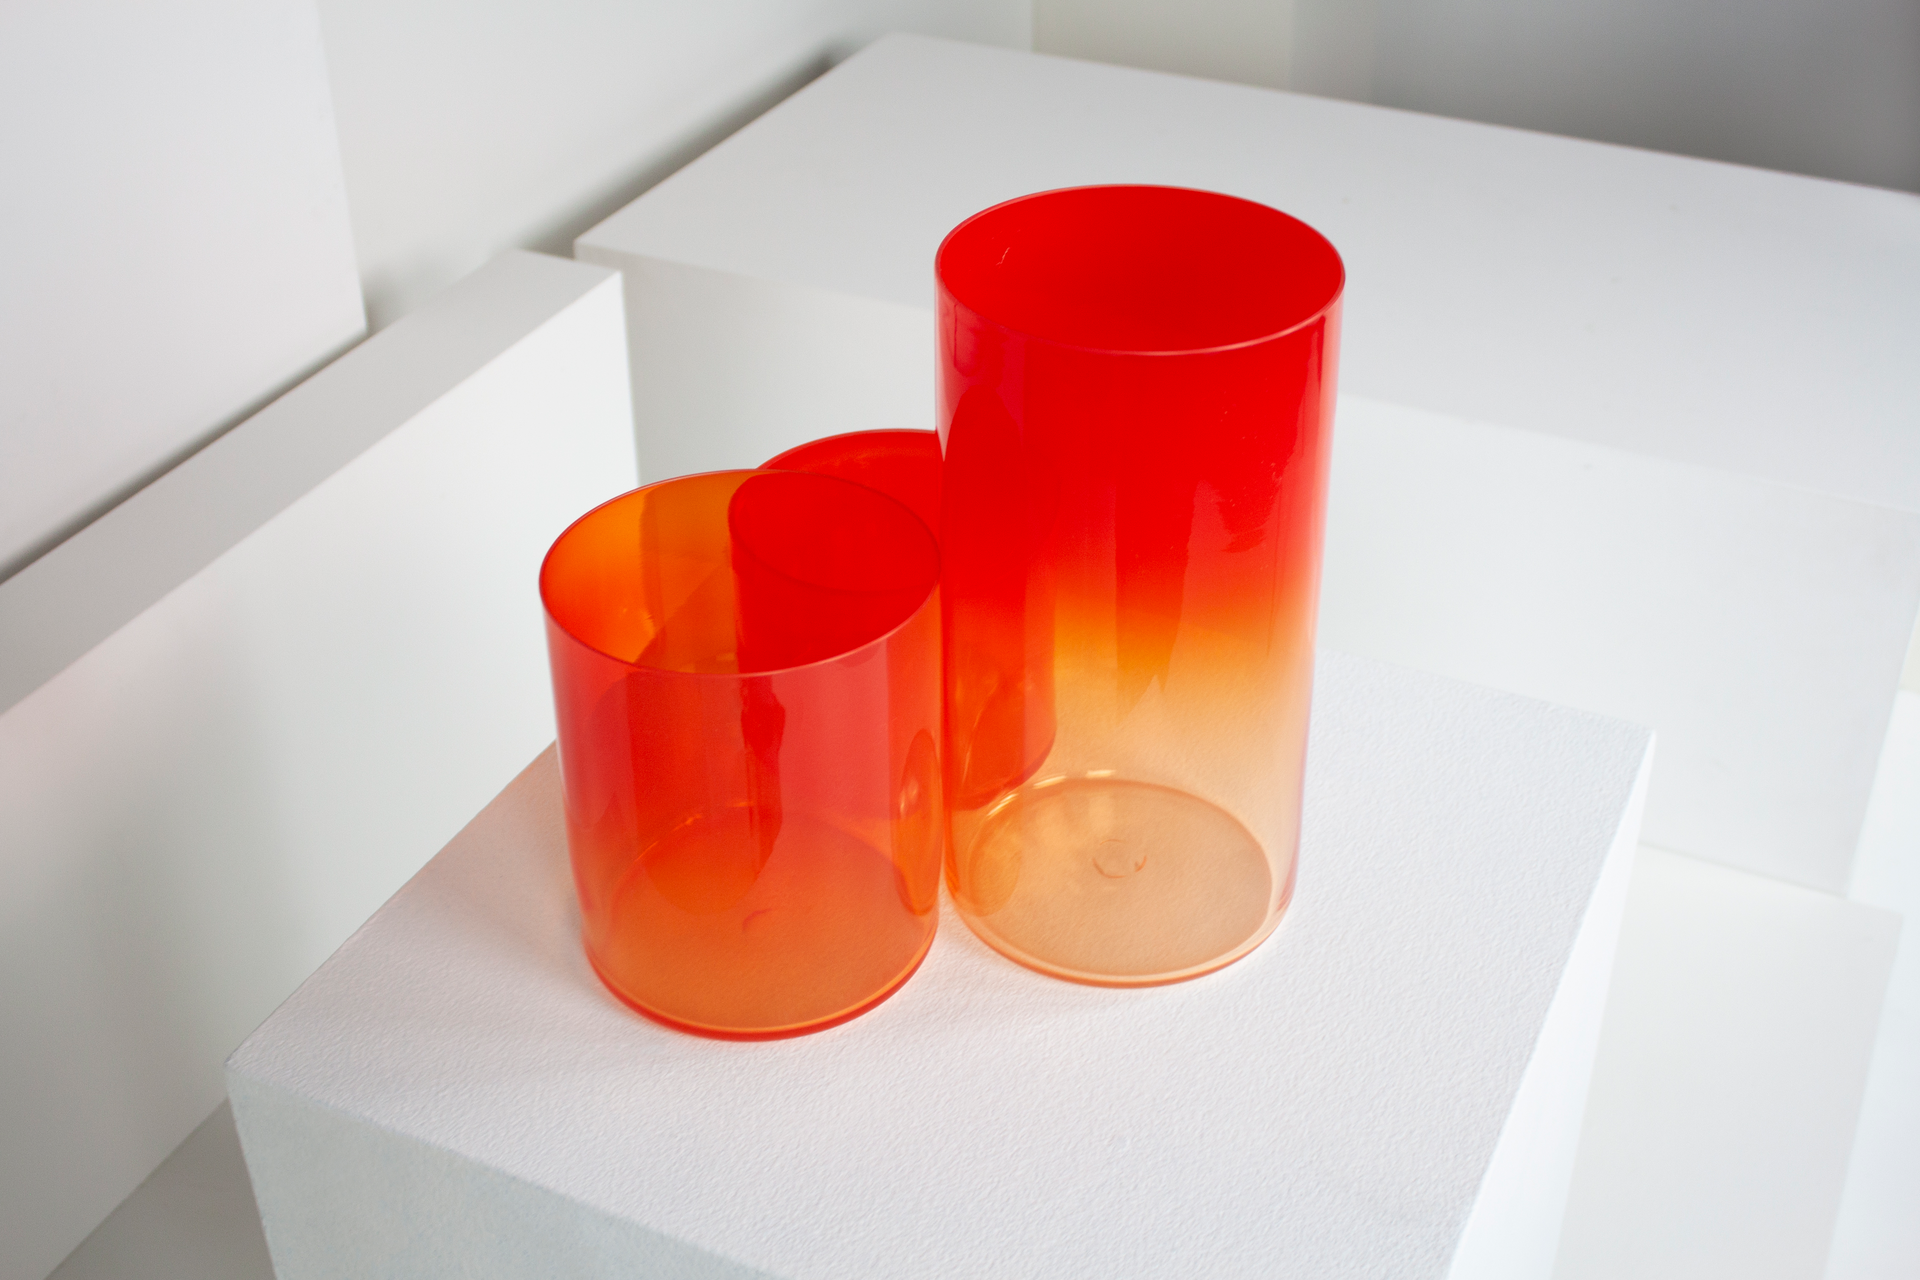 Fade Vessels 'Differing Perspectives' CraftACT 2020